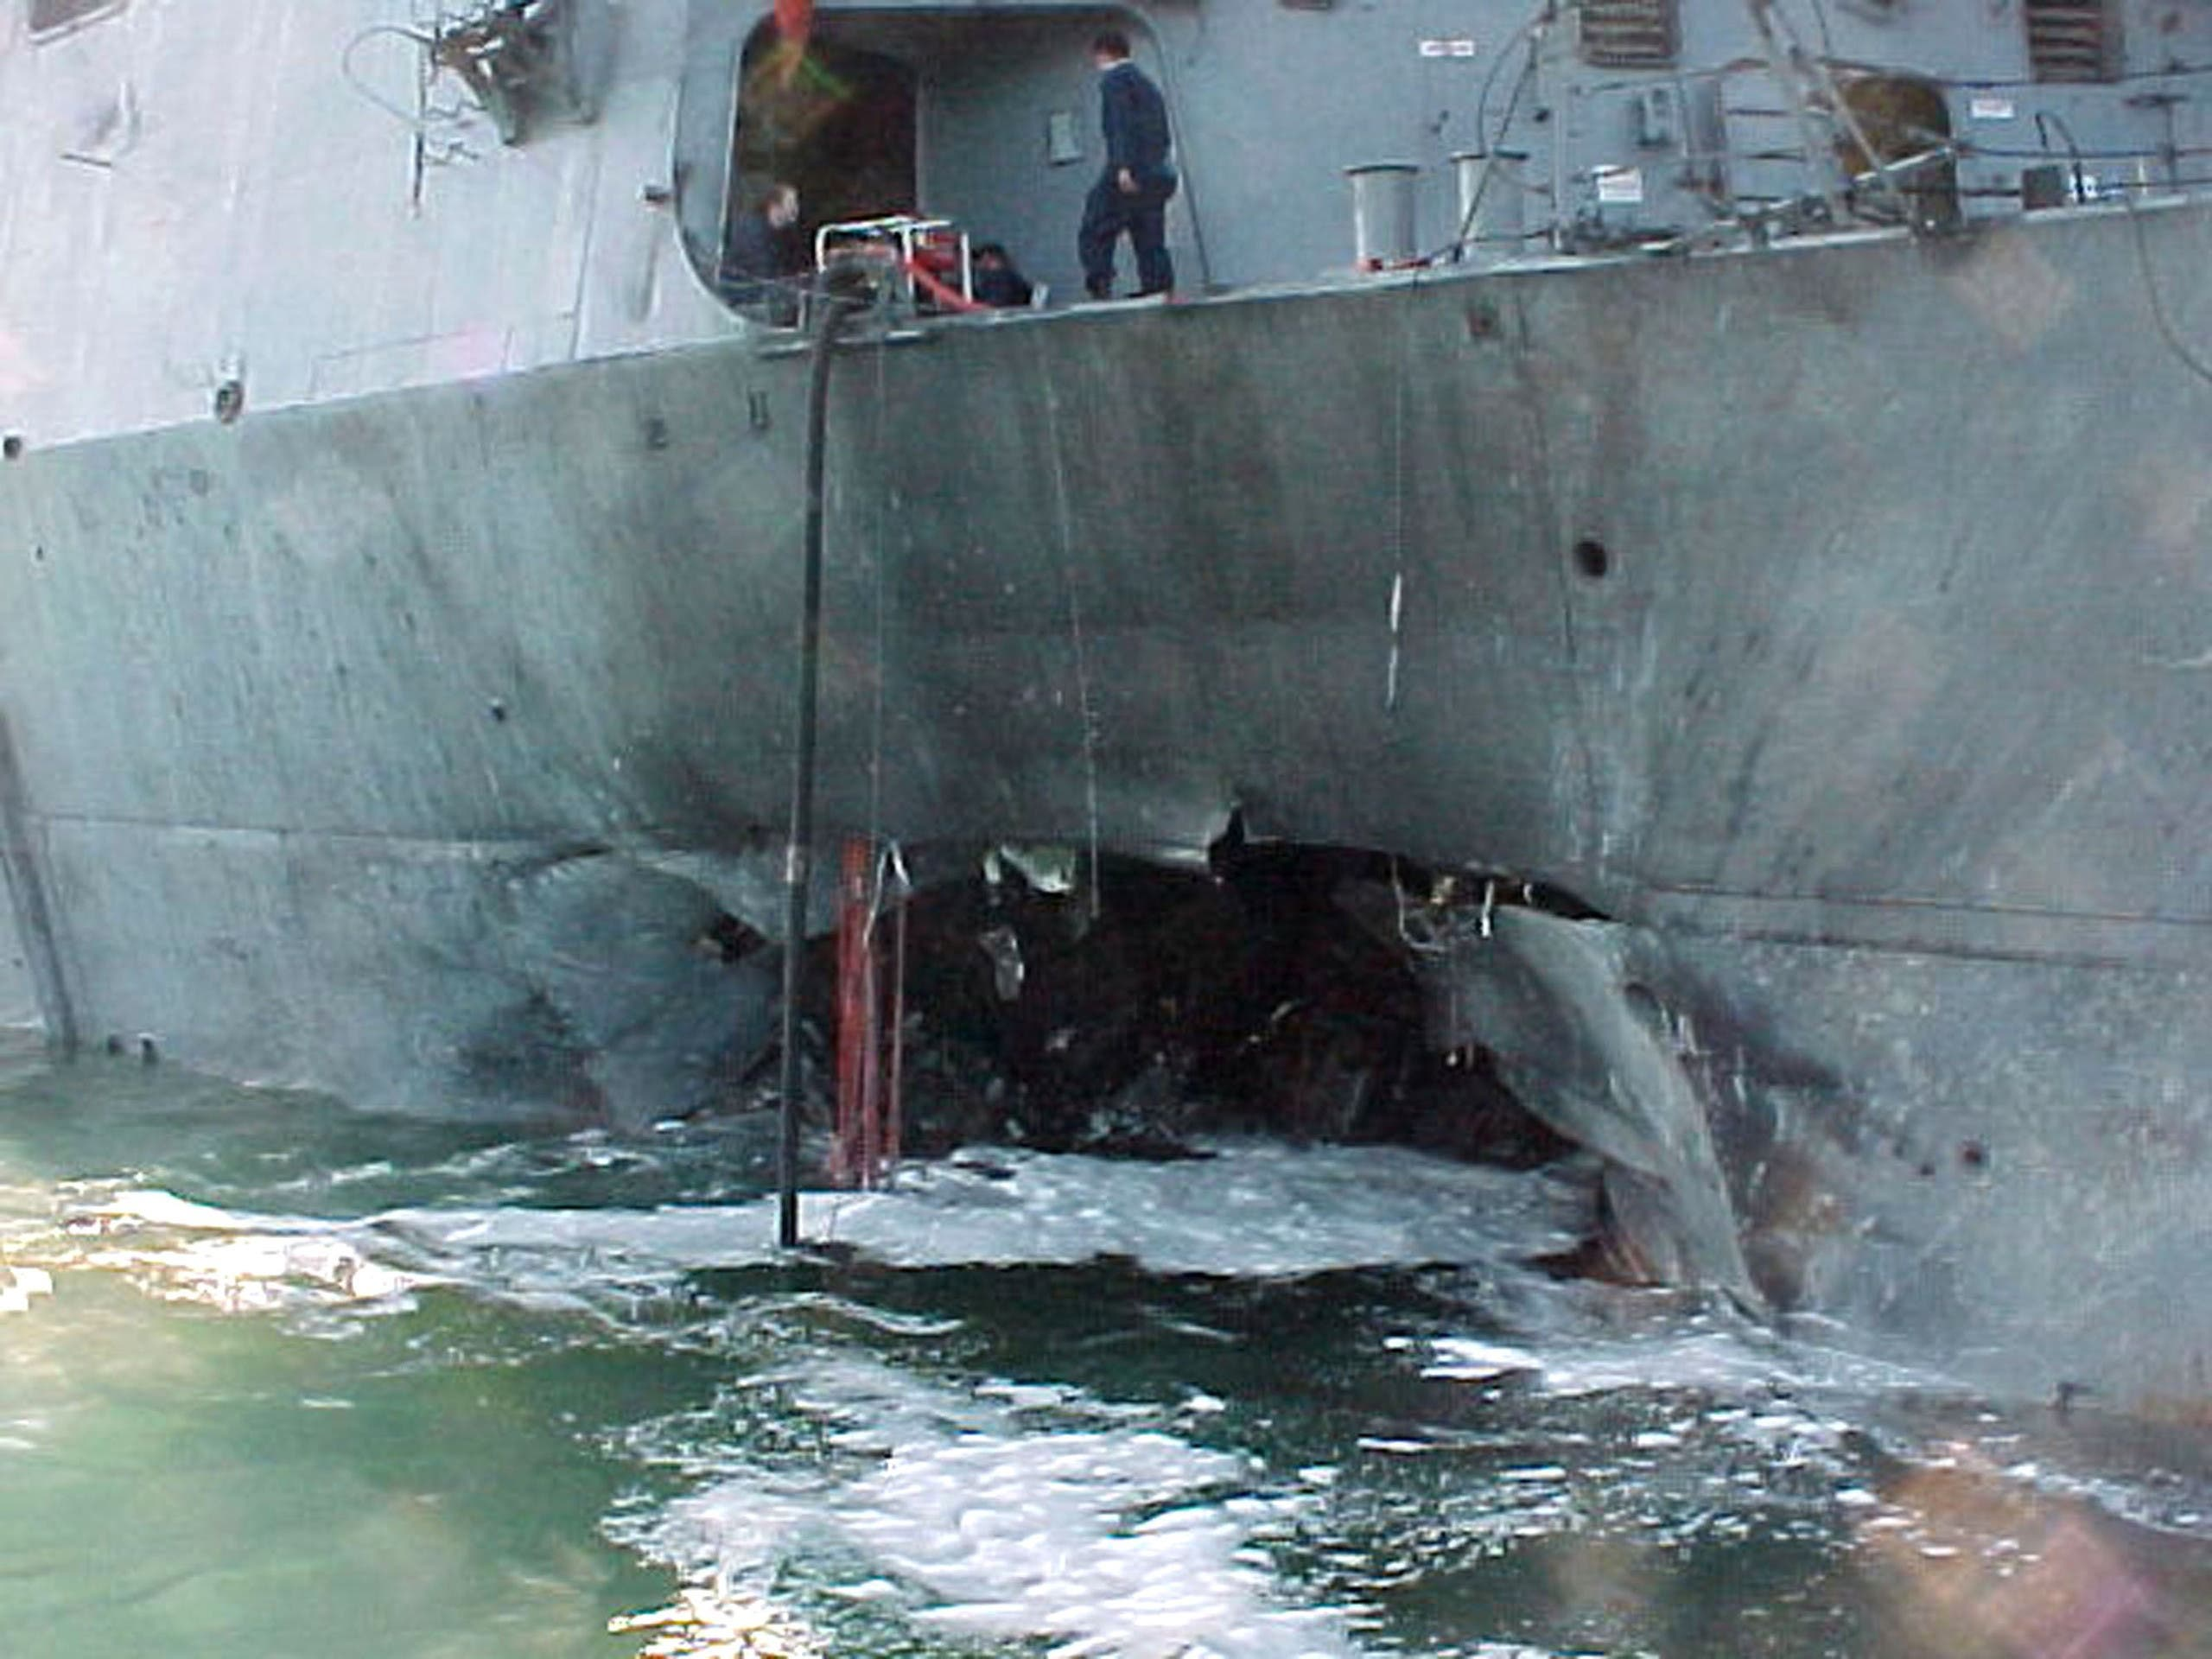 This Handout file photo taken October 12, 2000 shows the port side of the guided missile destroyer USS Cole damaged after a suspected terrorist bomb exploded during a refueling operation in the port of Aden in Yemen. (AFP)